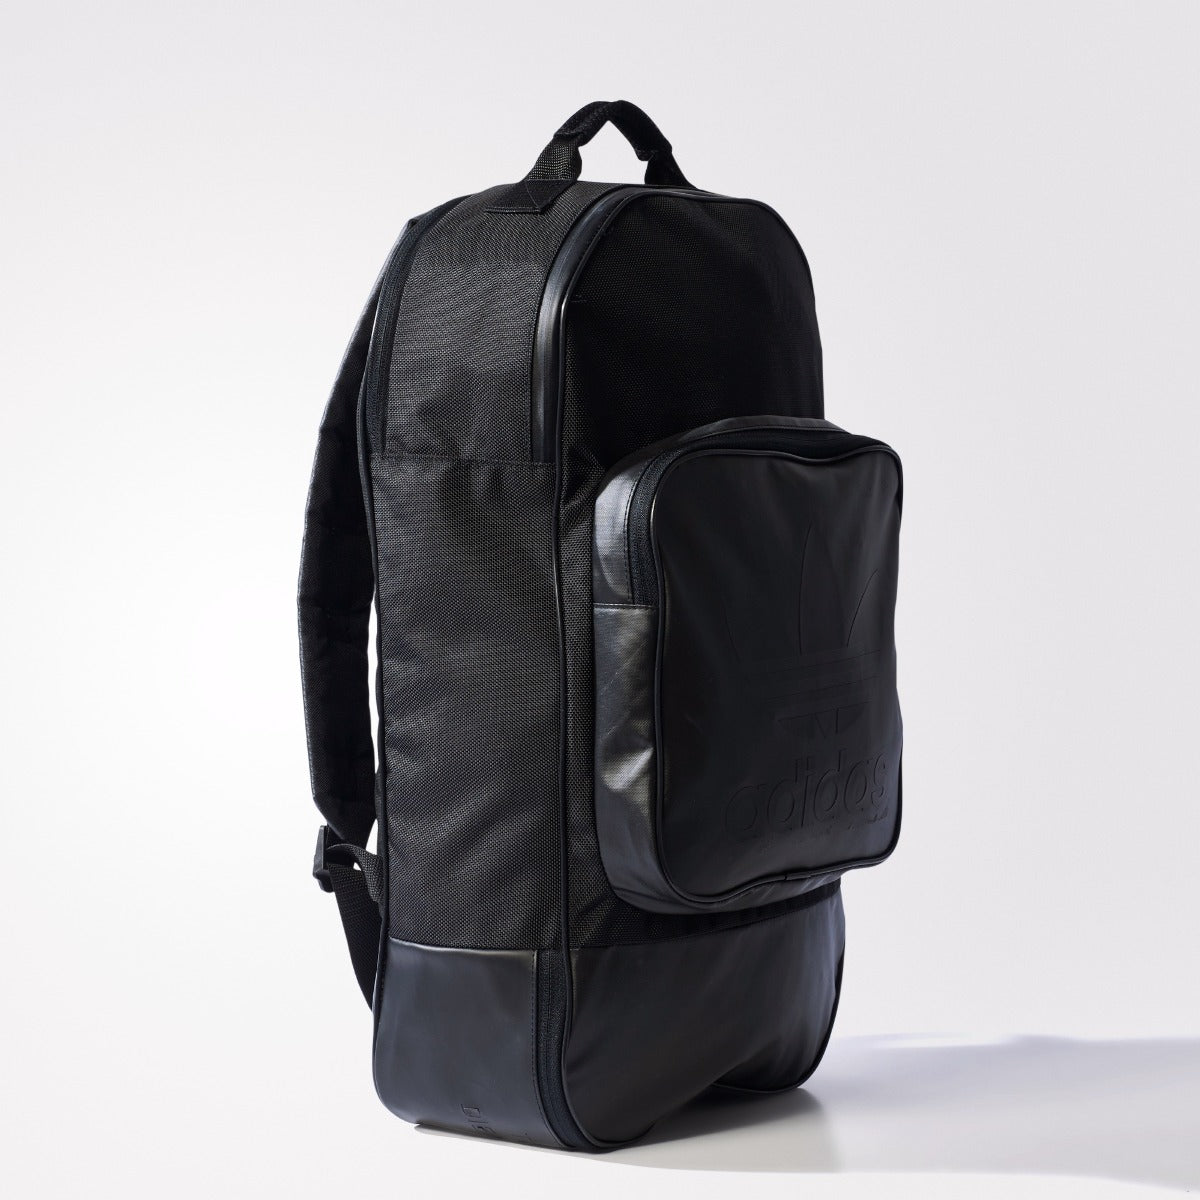 775d7c61b75e adidas Originals Street Sport Backpack Black BK6804